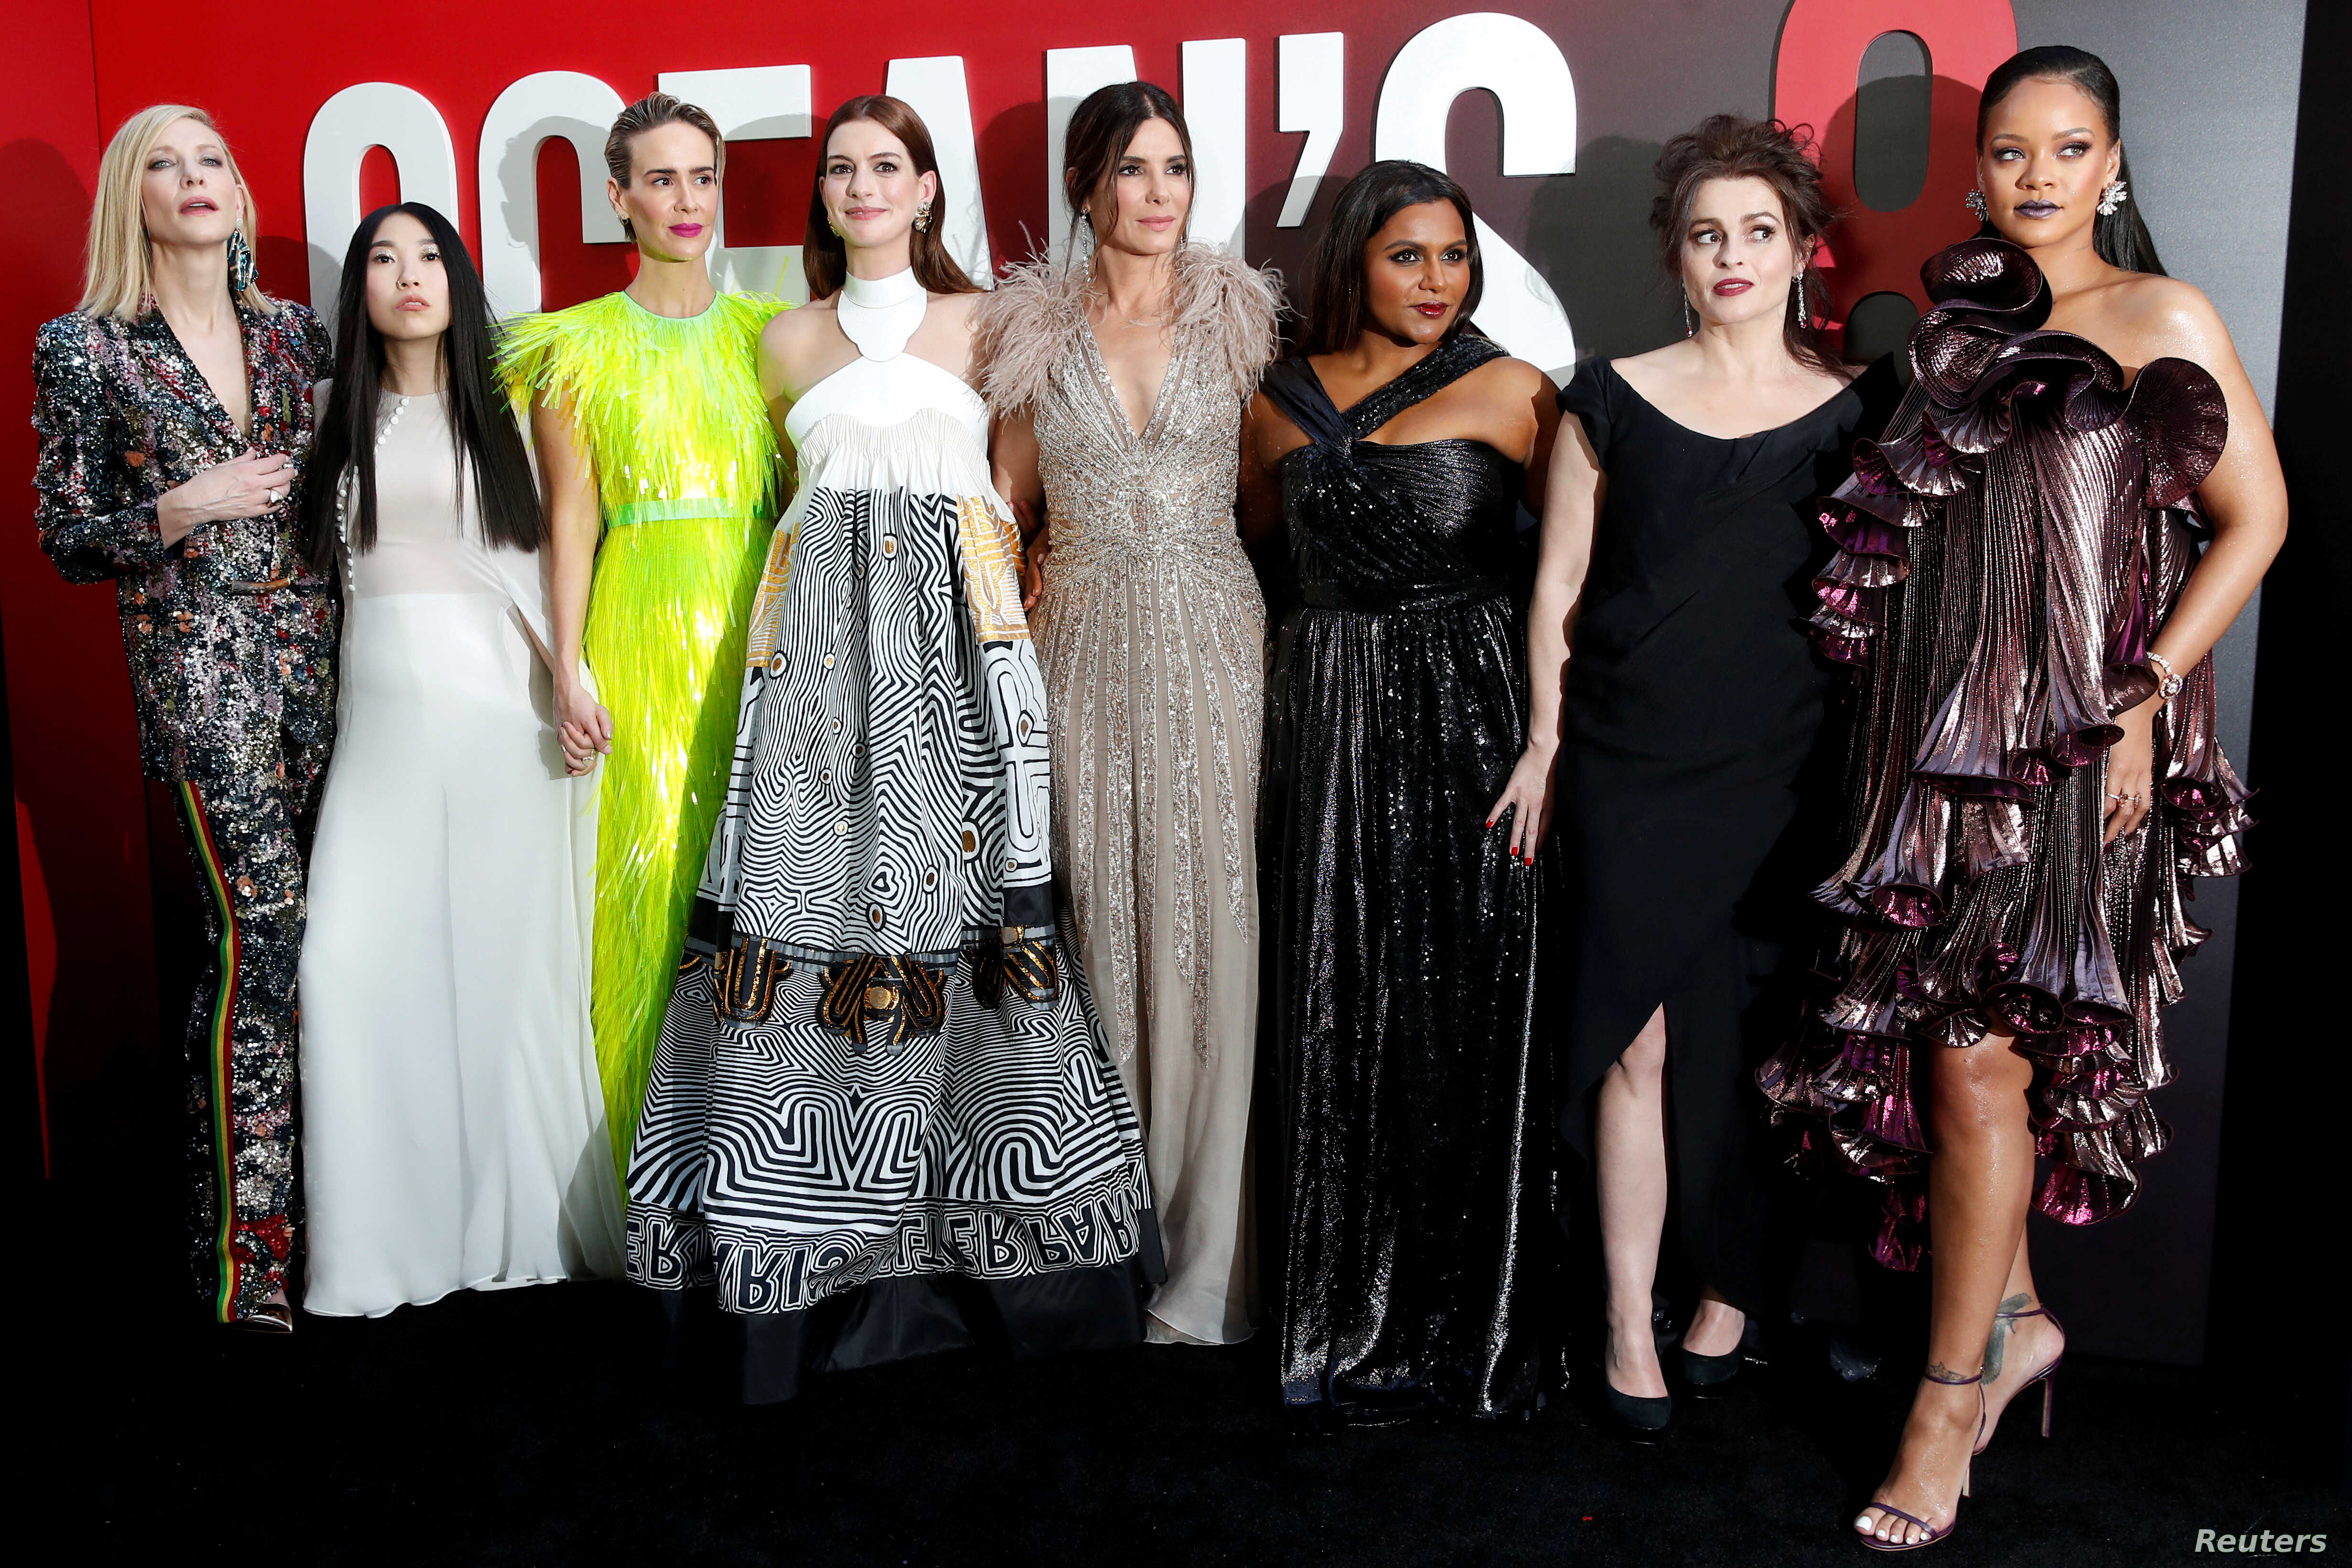 Feminist Or Just Fun Ocean S 8 Steals Hollywood Spotlight Voice Of America English